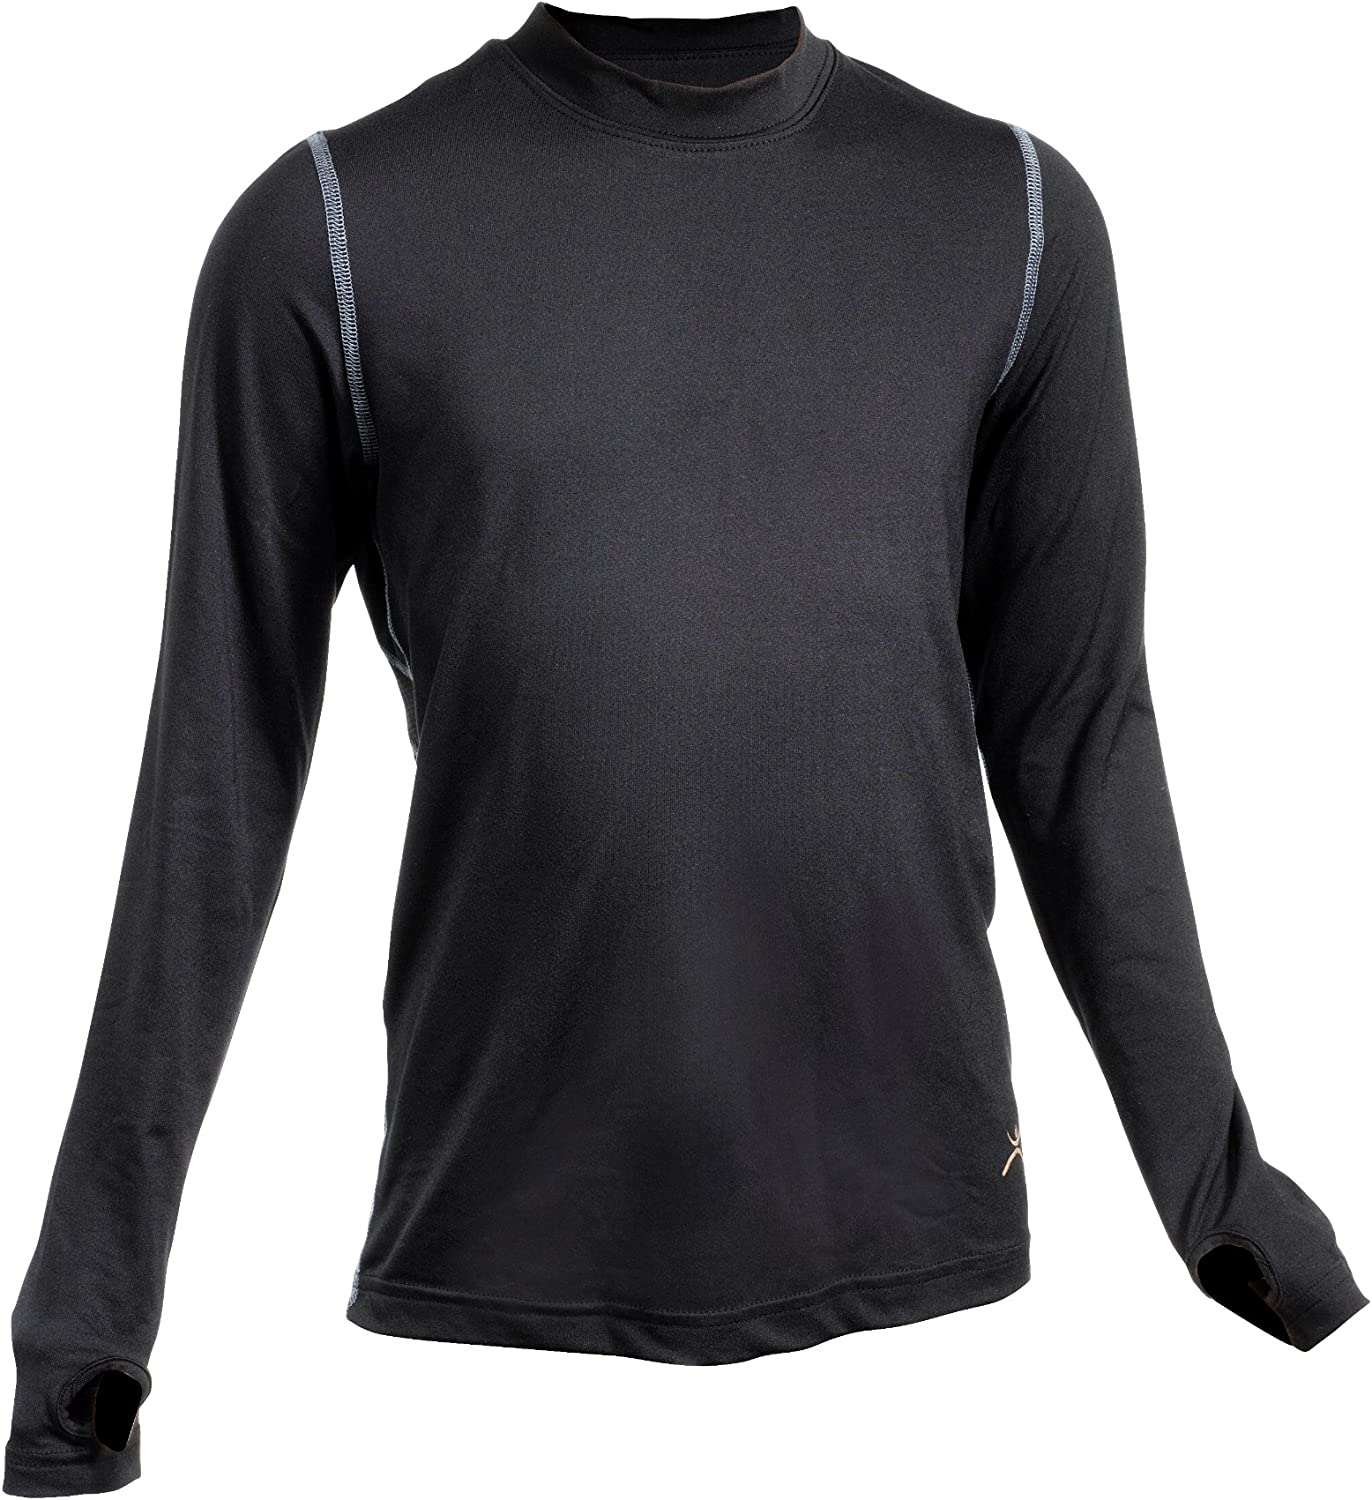 Terramar Thermolator Climasense 4-Way Stretch Brushed Crew Hoodie